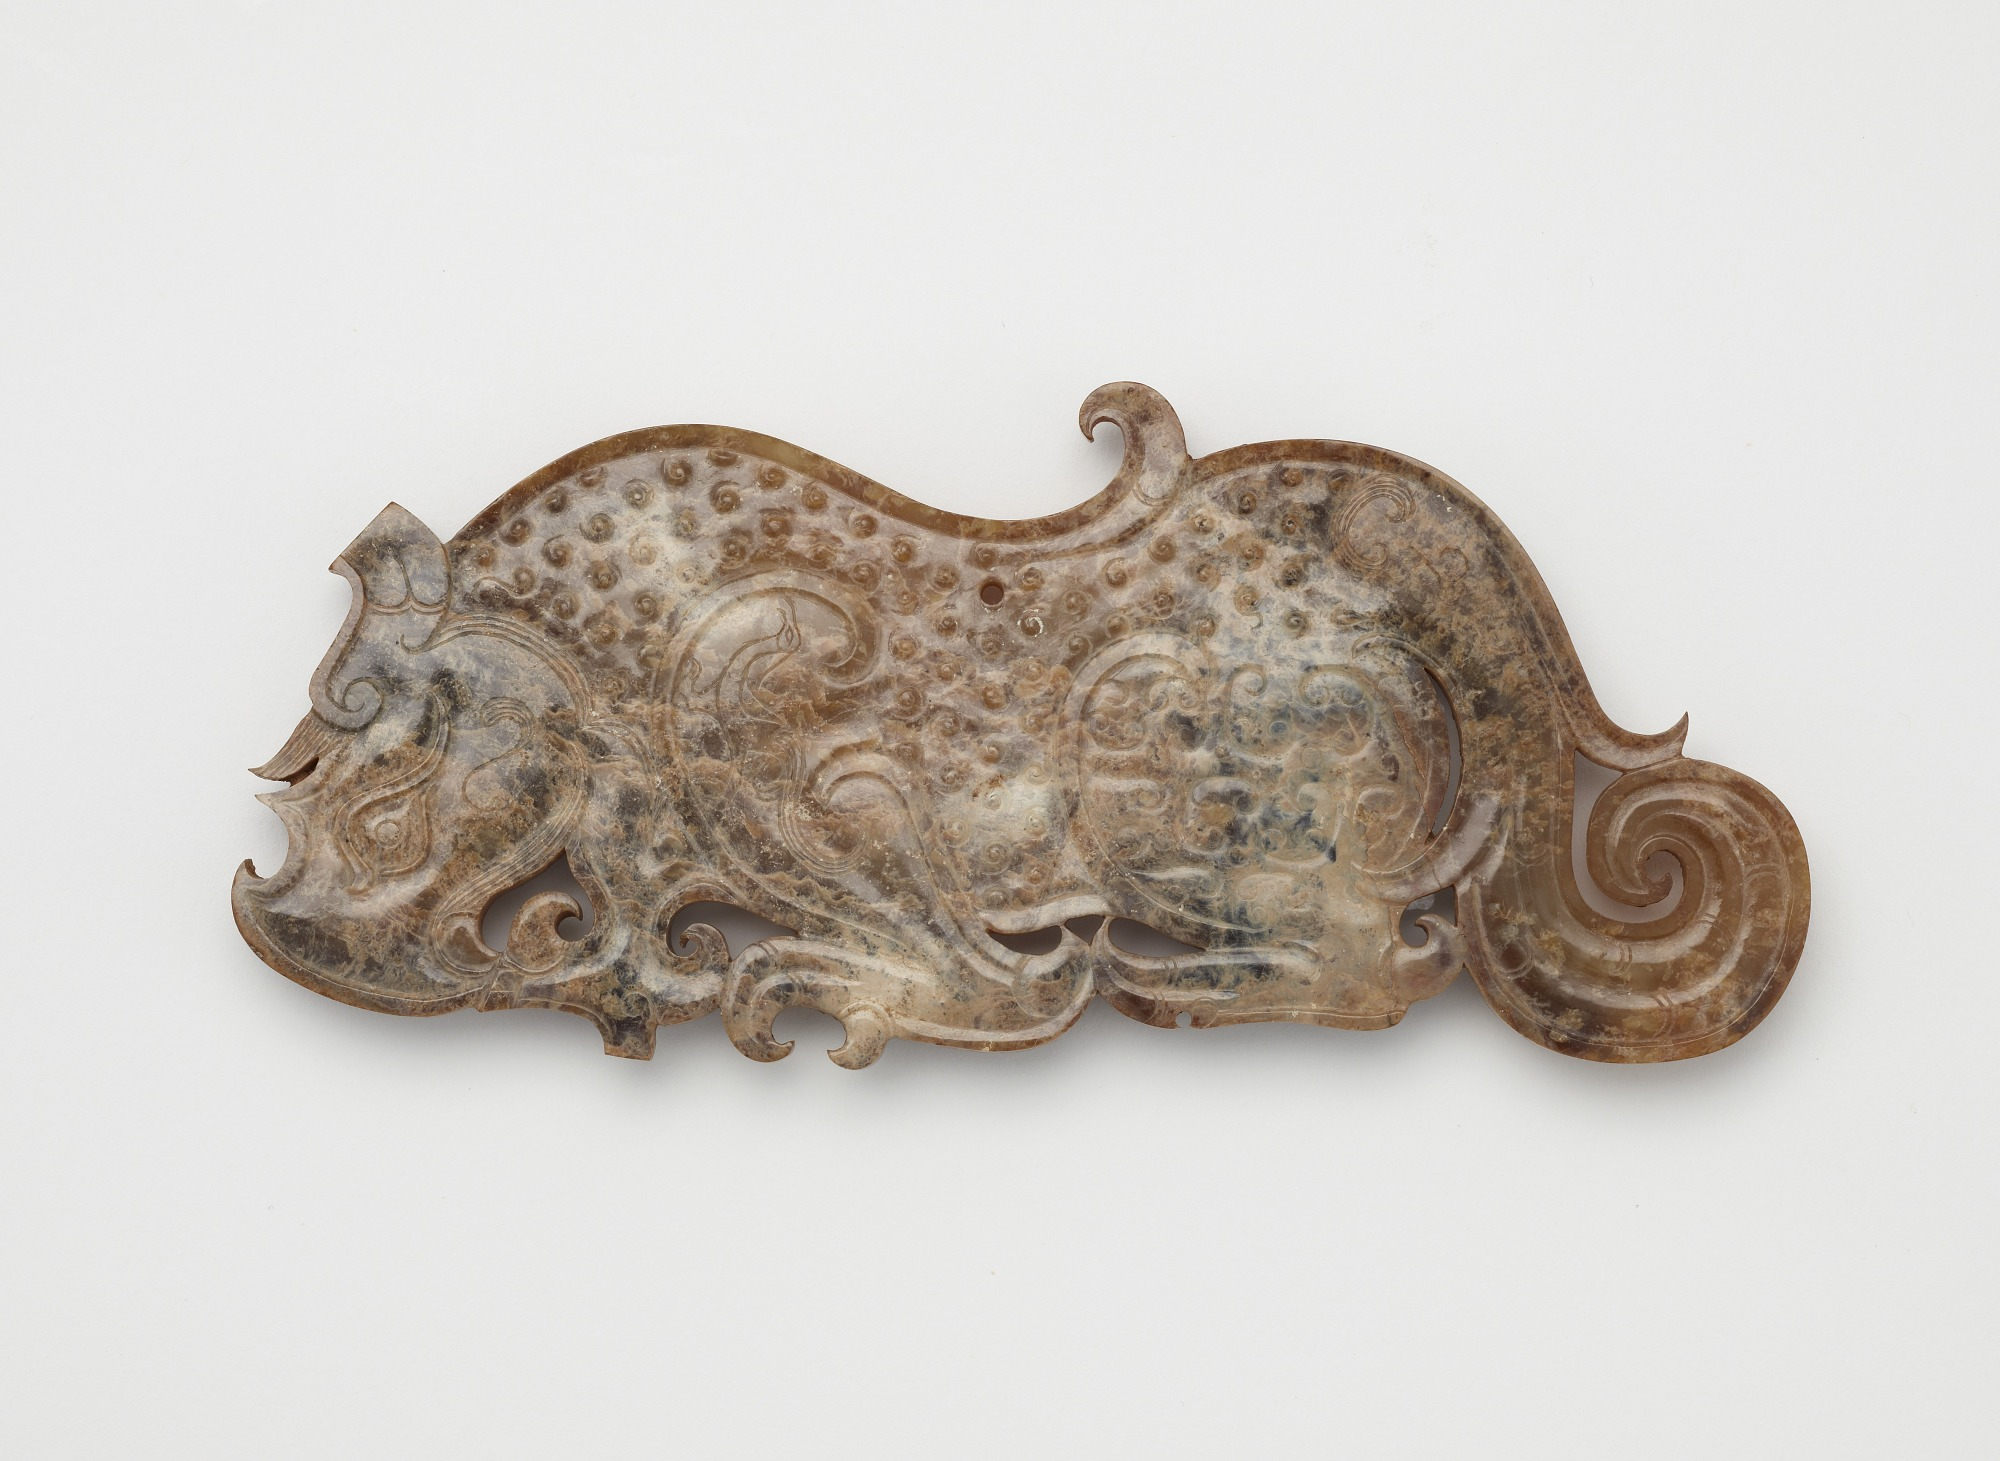 Pendant in the form of a crouching tiger